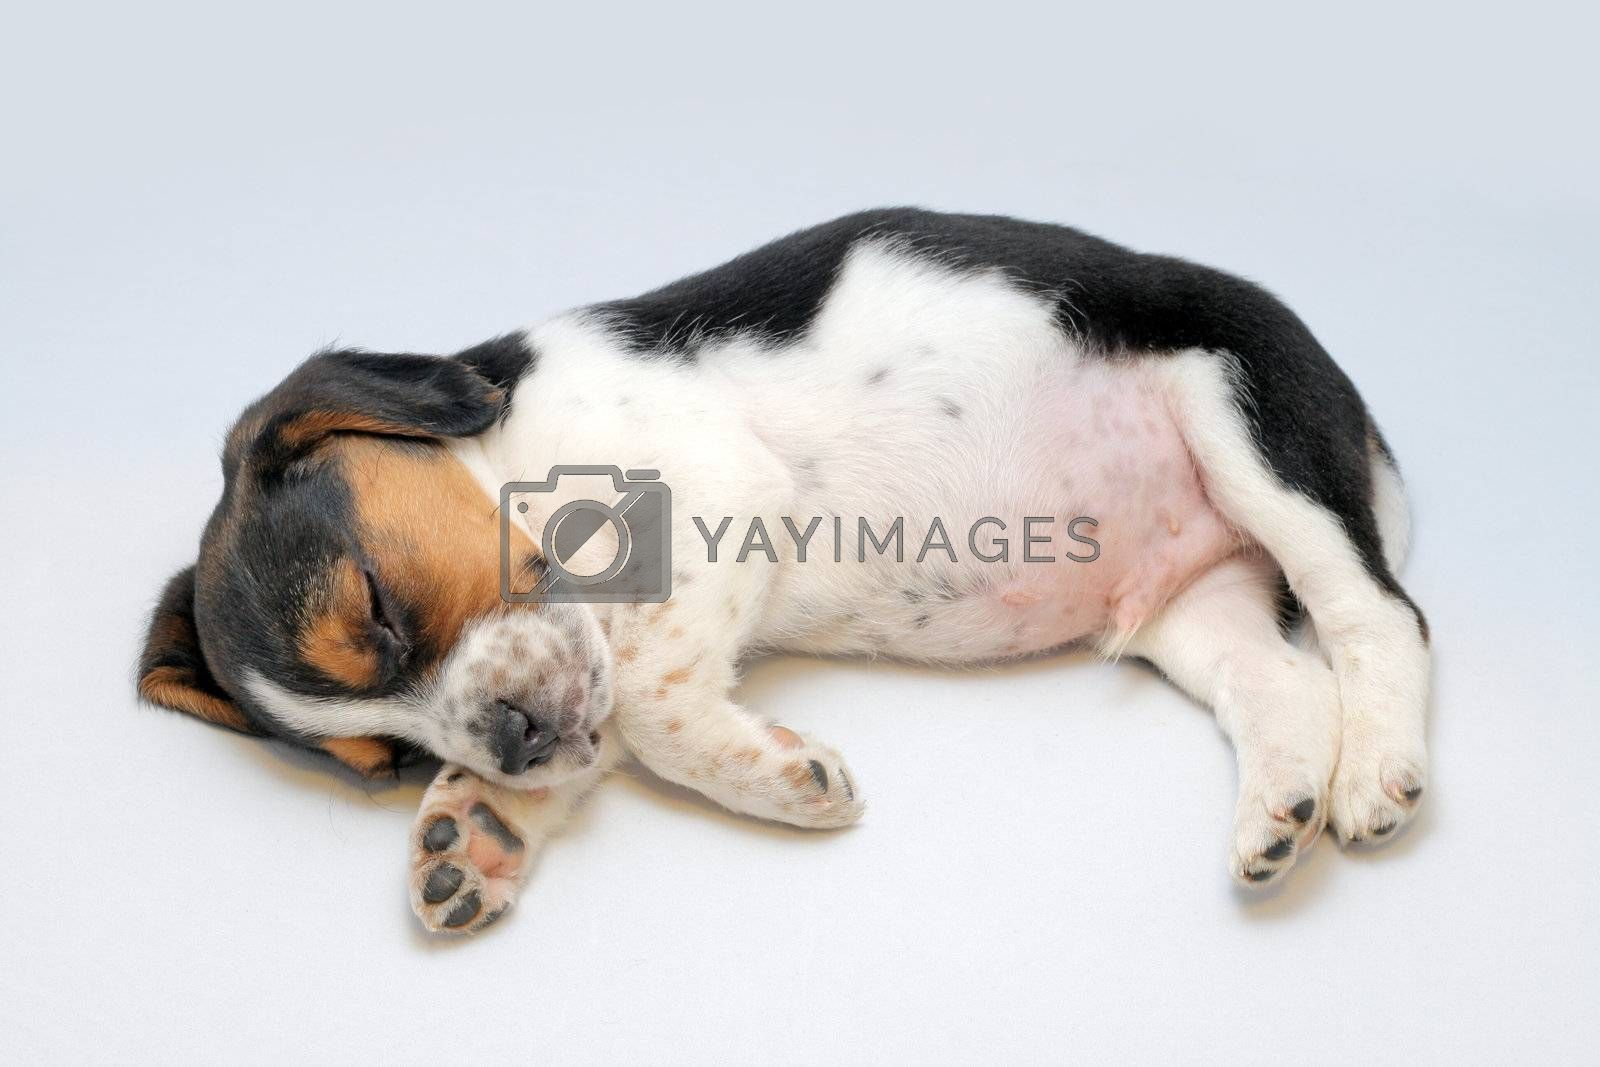 Tri Color Beagle Puppy Sleeping Royalty Free Stock Image Stock Photos Royalty Free Images Vectors Footage Yayimages